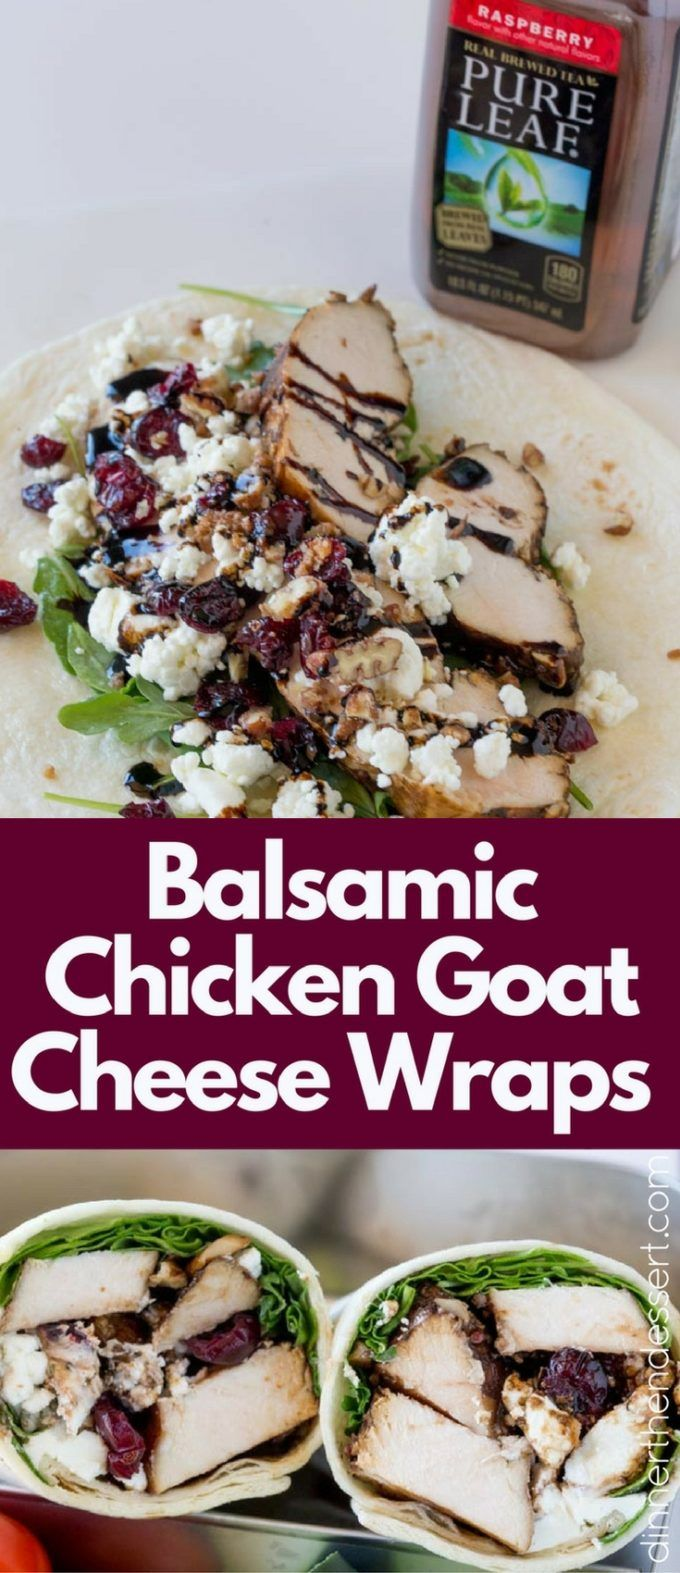 Balsamic Chicken Goat Cheese Wraps made with balsamic roasted chicken breasts, arugula, pecans, cranberries and goat cheese and topped with a wonderful balsamic glaze. #PureLeafLunchBox #RealBrewedTea #AD @pureleaf